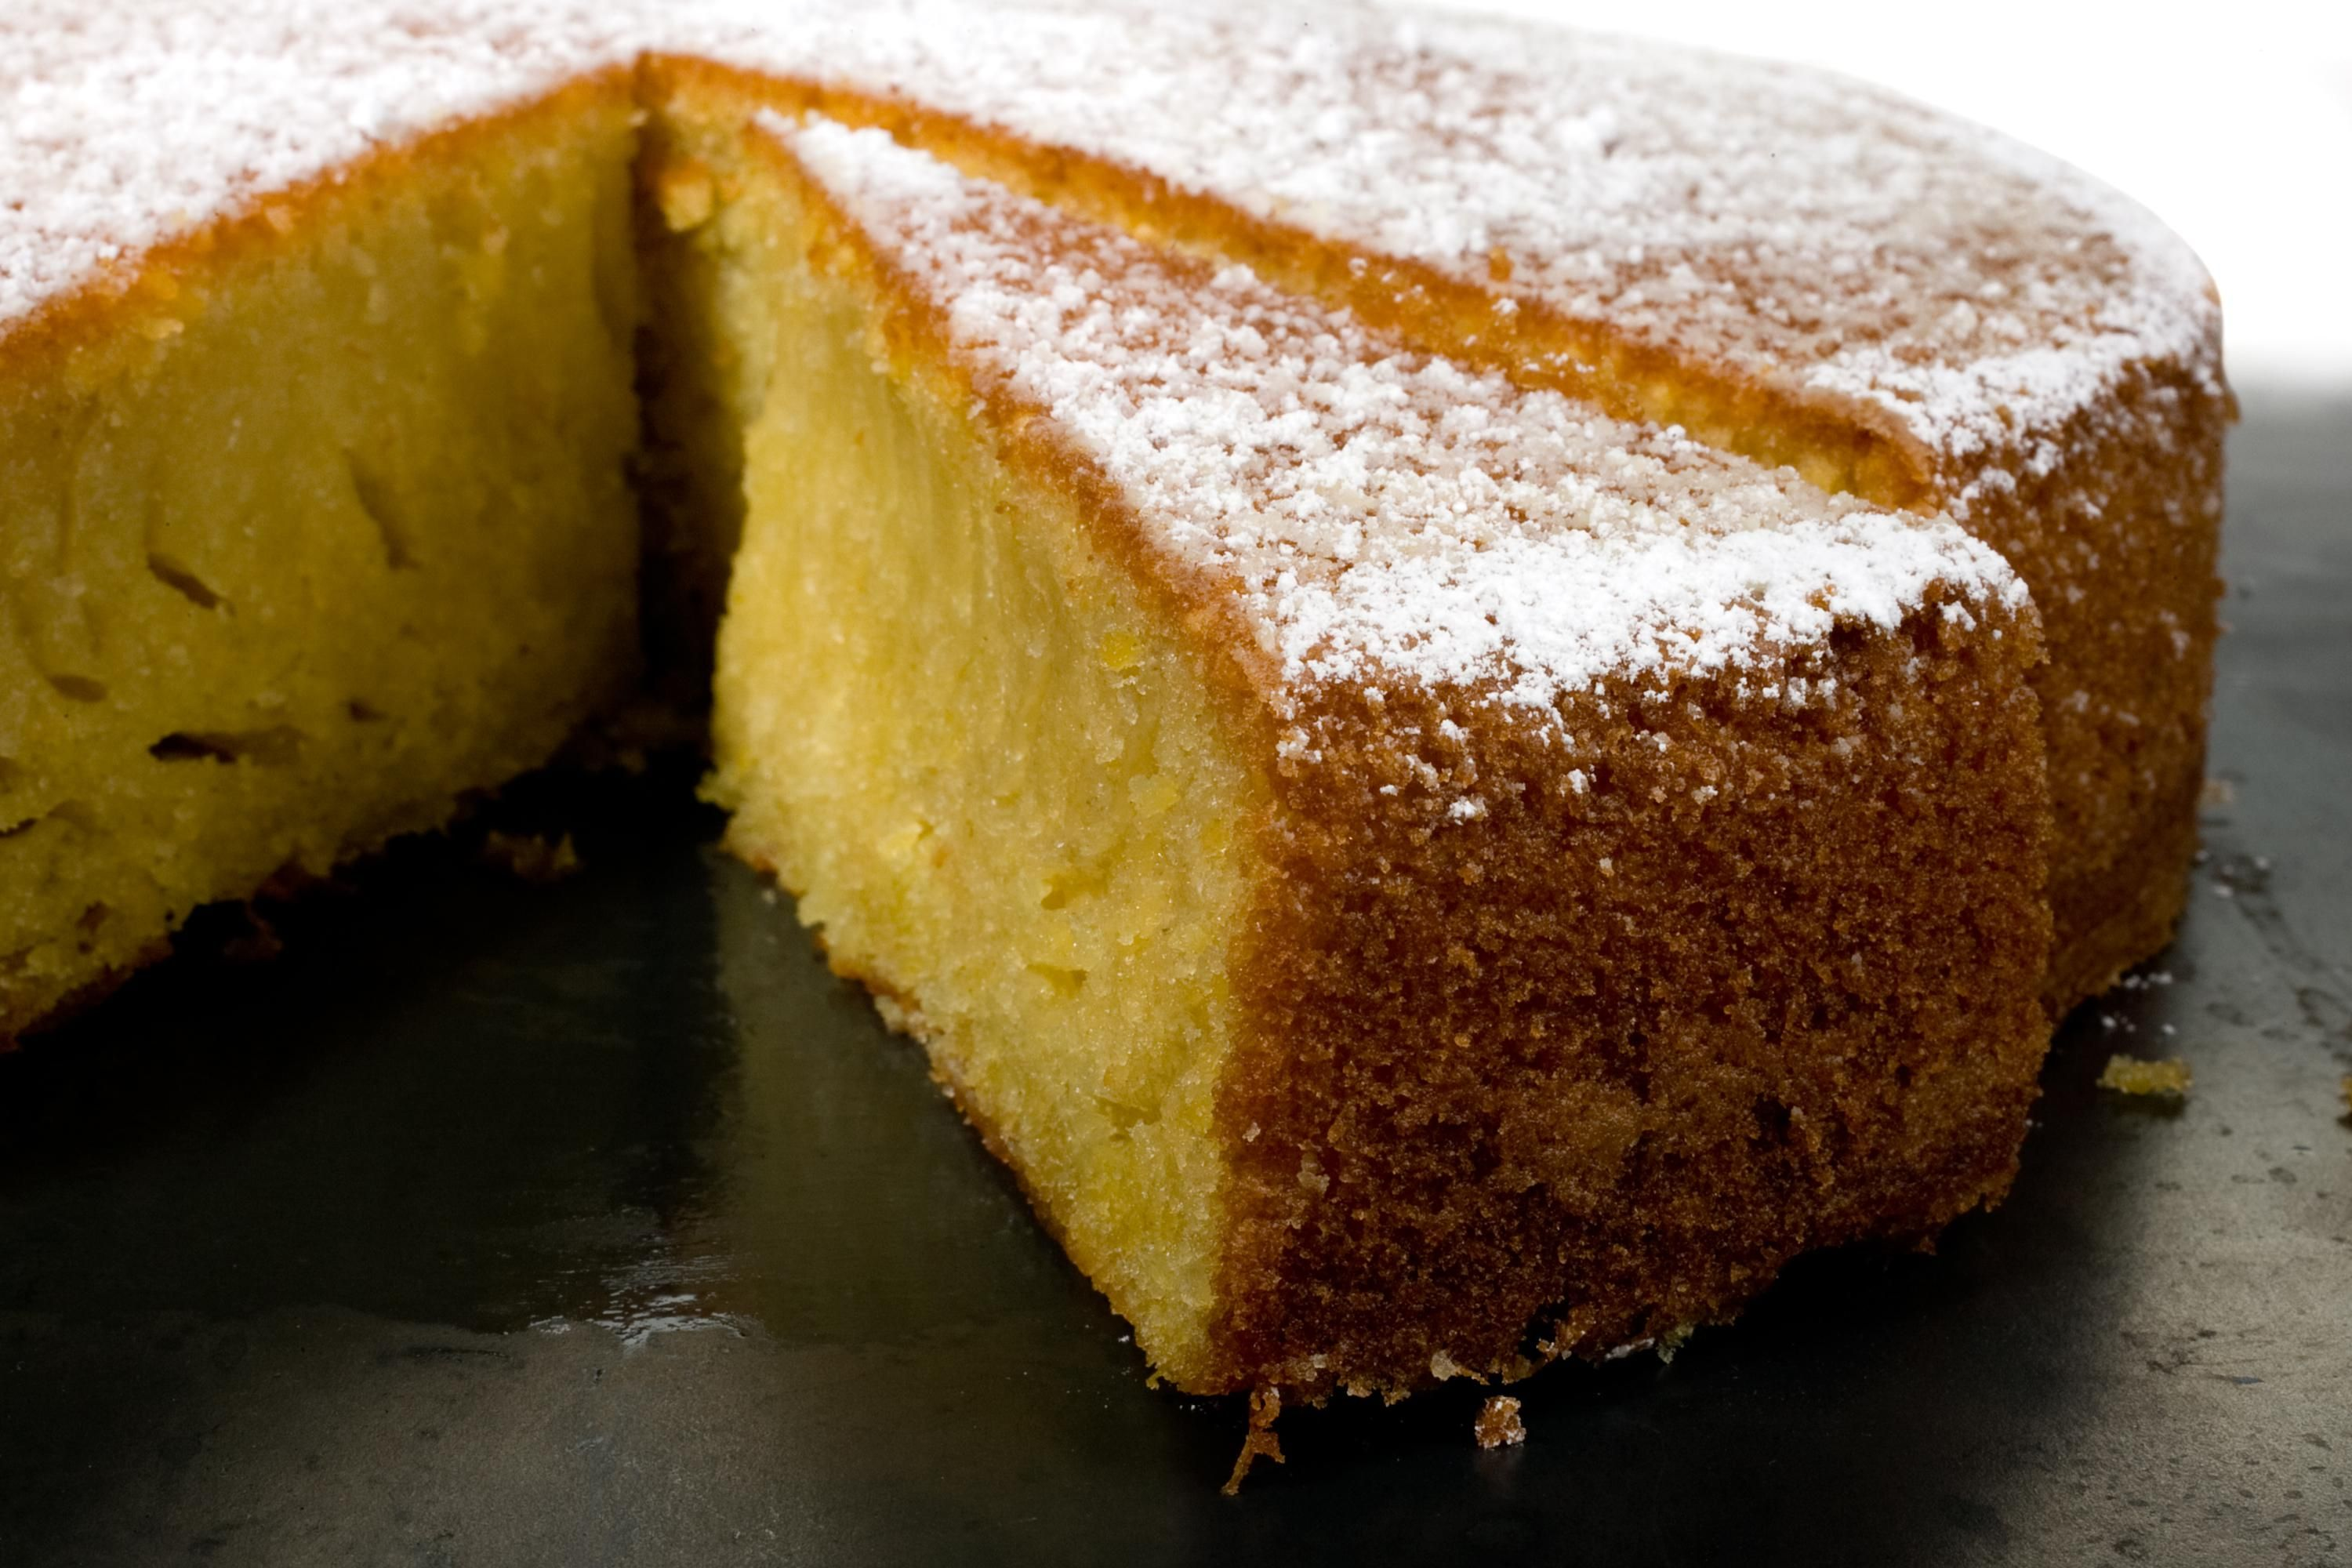 Polenta cake has a hint of orange and a slightly crunchy texture from cornmeal, is moist without being greasy, and is strongly flavored with olive oil... #oliveoilcake